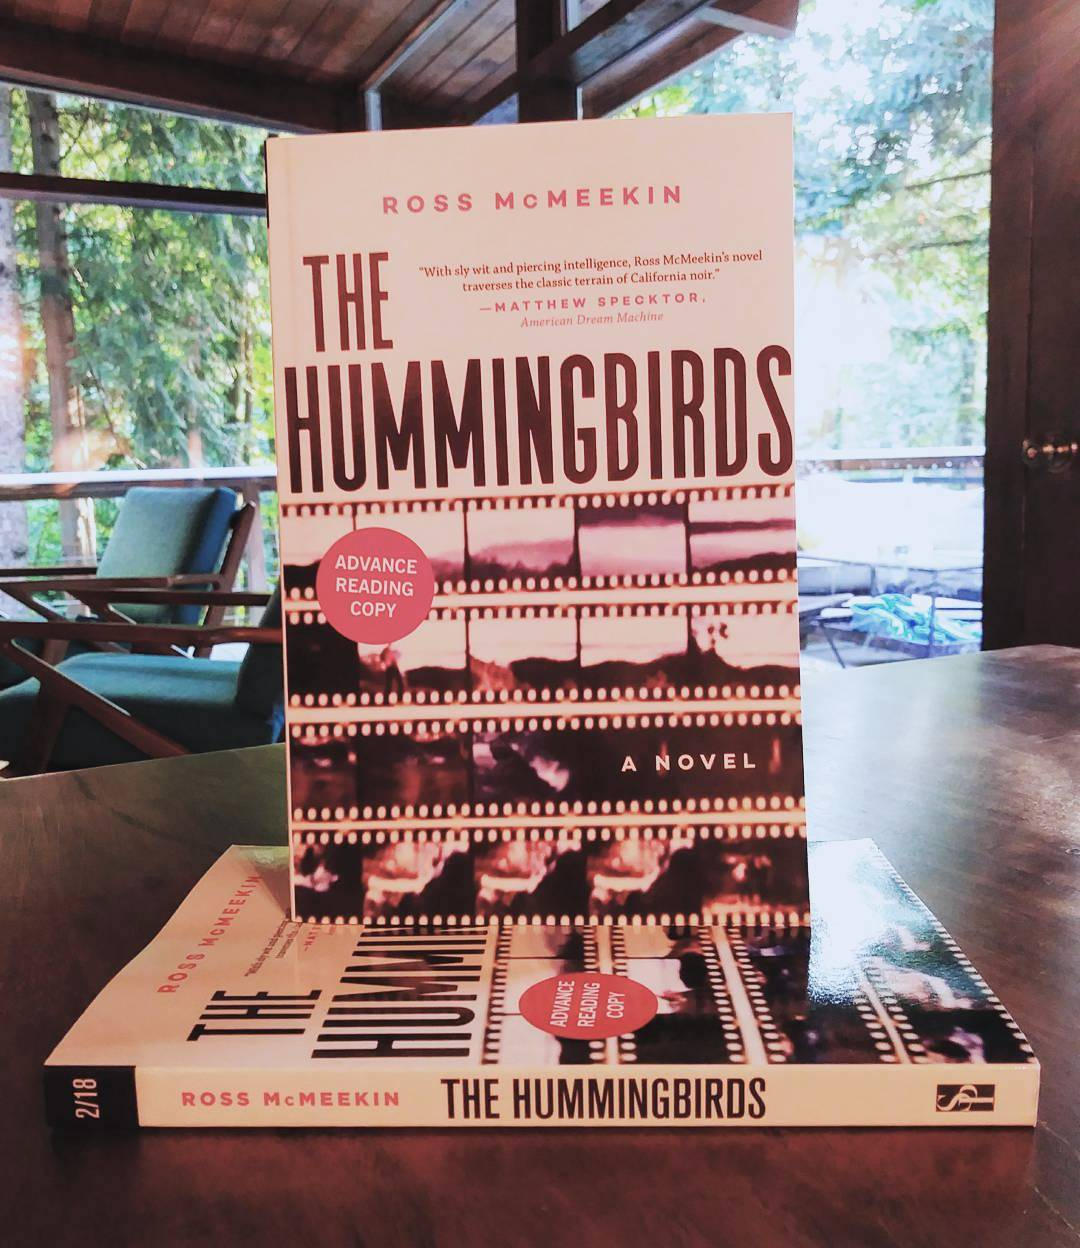 The Hummingbirds - ARC.jpg